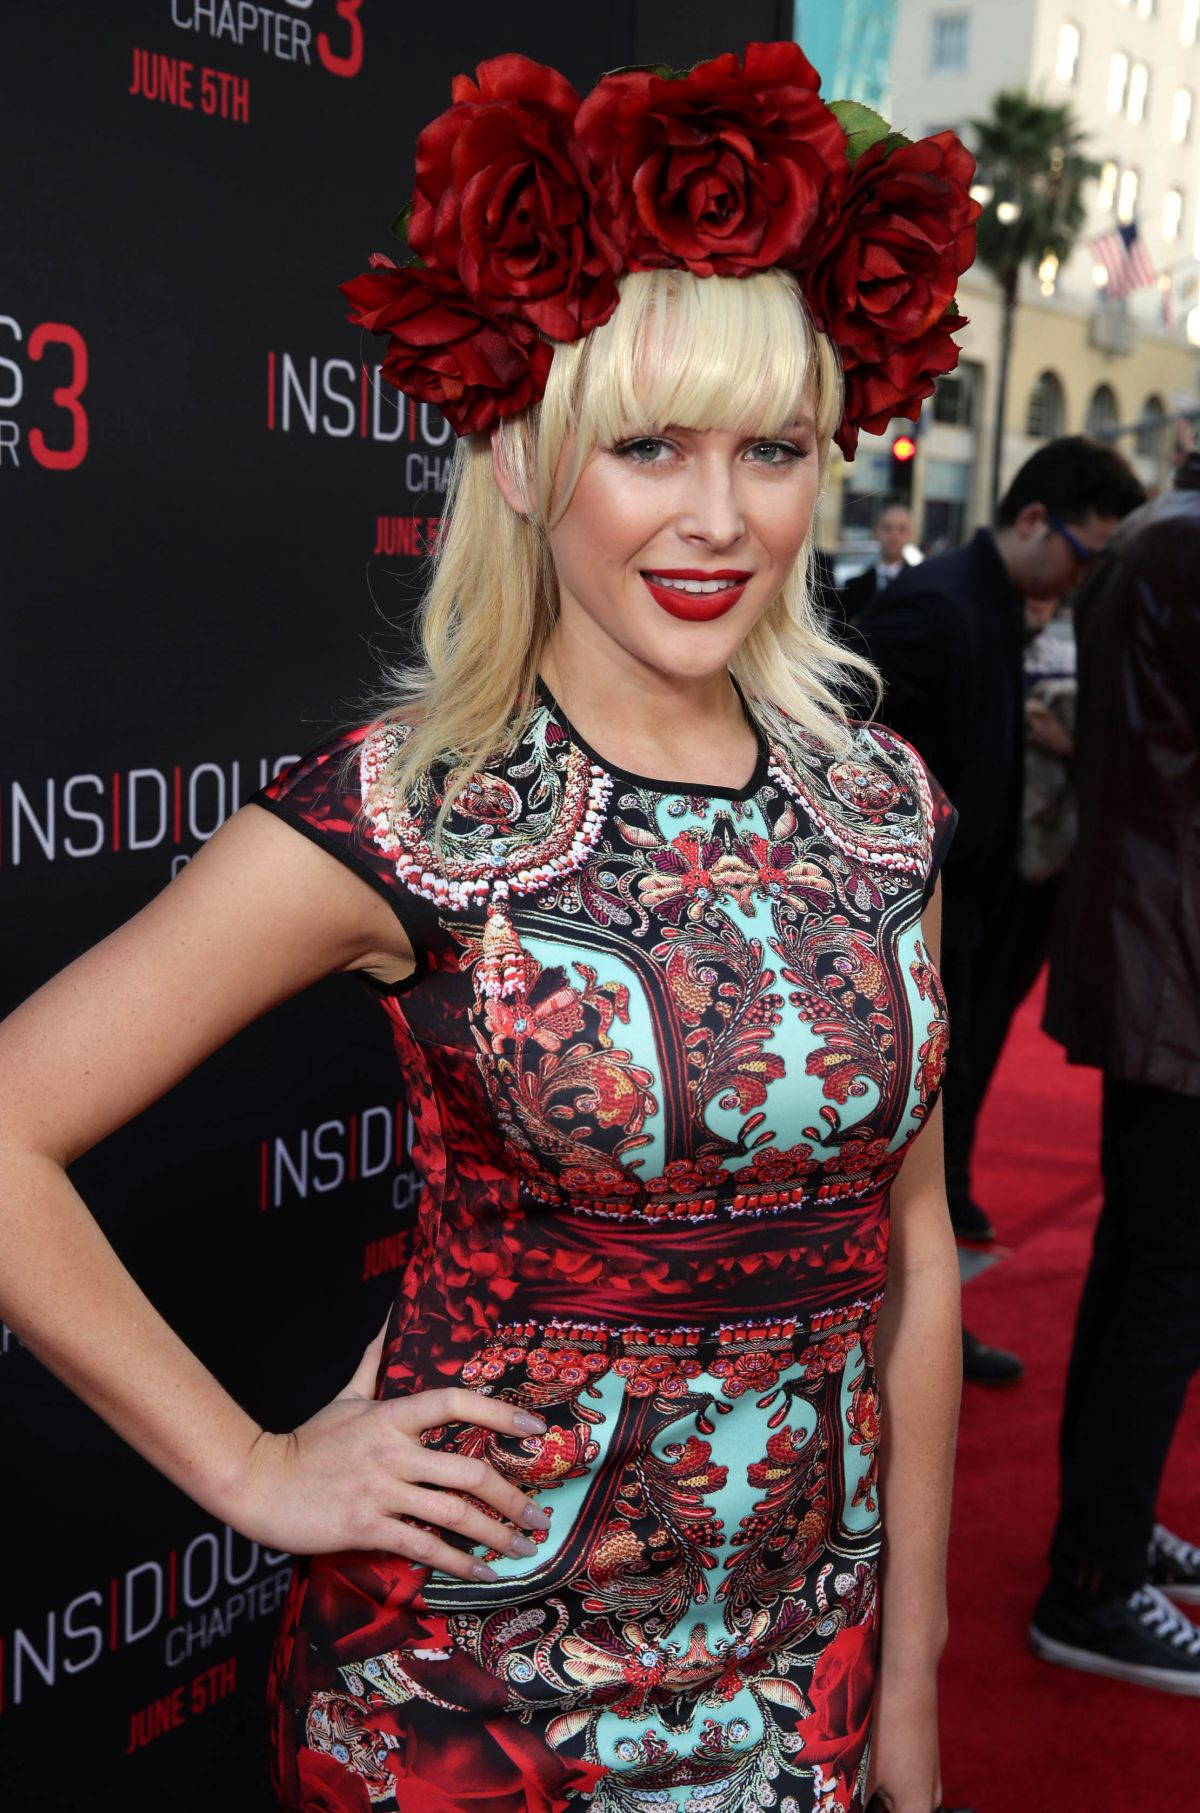 Renee Olstead At Insidious Chapter 3 Premiere